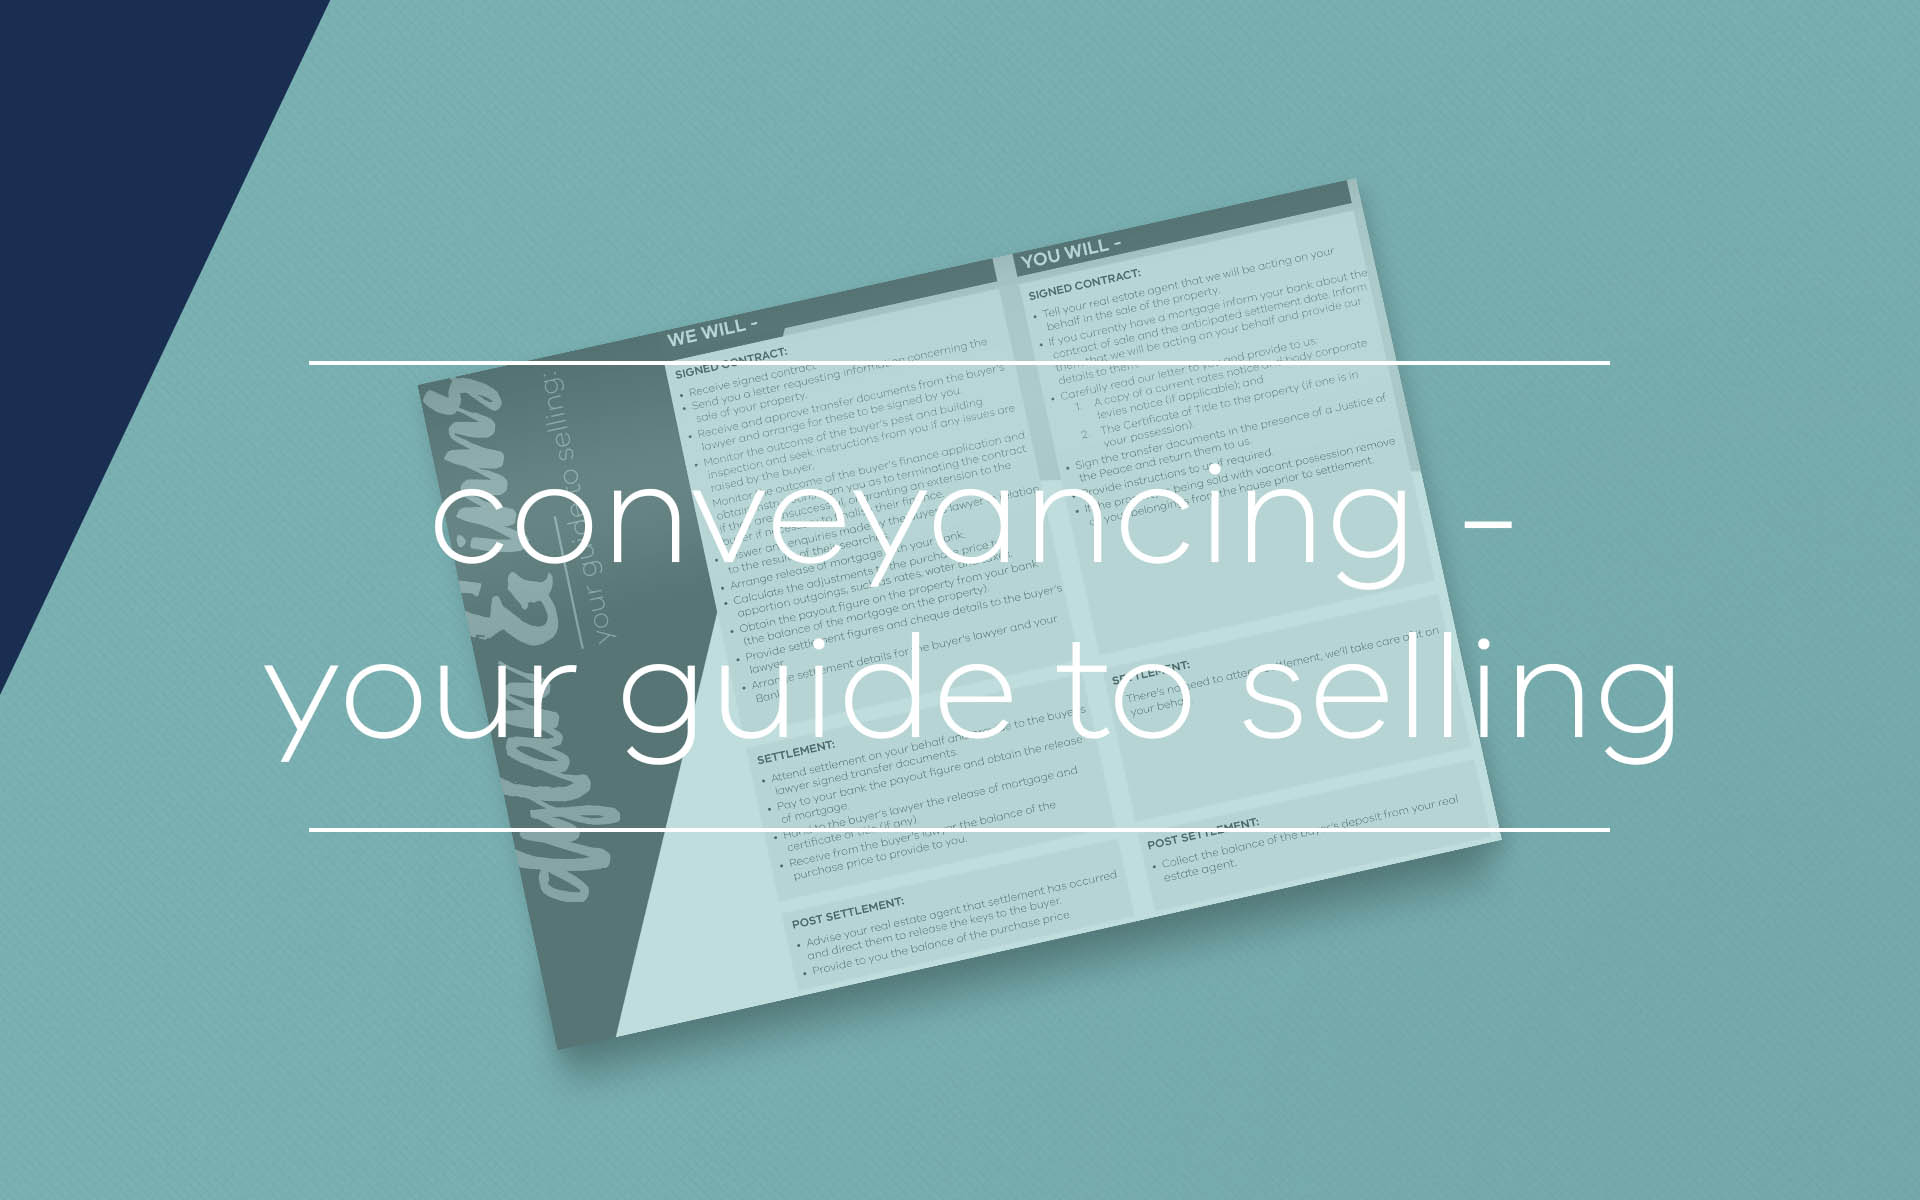 When selling your property, this guide by our property lawyers may assist you to understand the conveyancing process and be aware of your responsibilities as a seller.